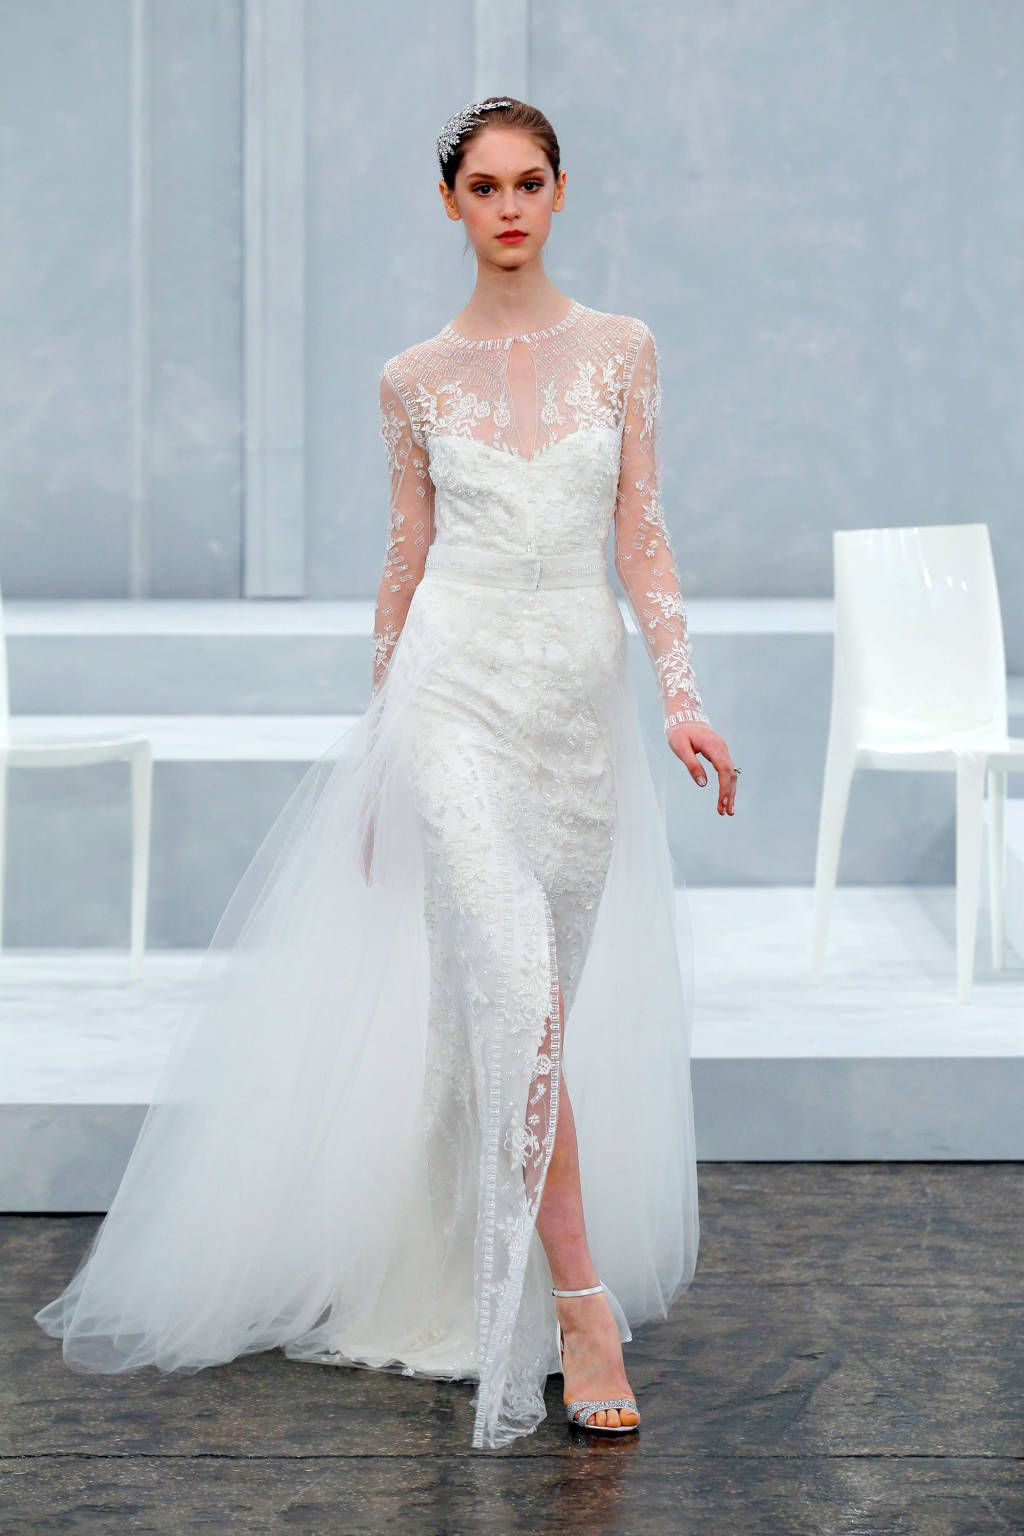 Best in Bridal: Spring 2015 | Monique lhuillier, Wedding dress and ...